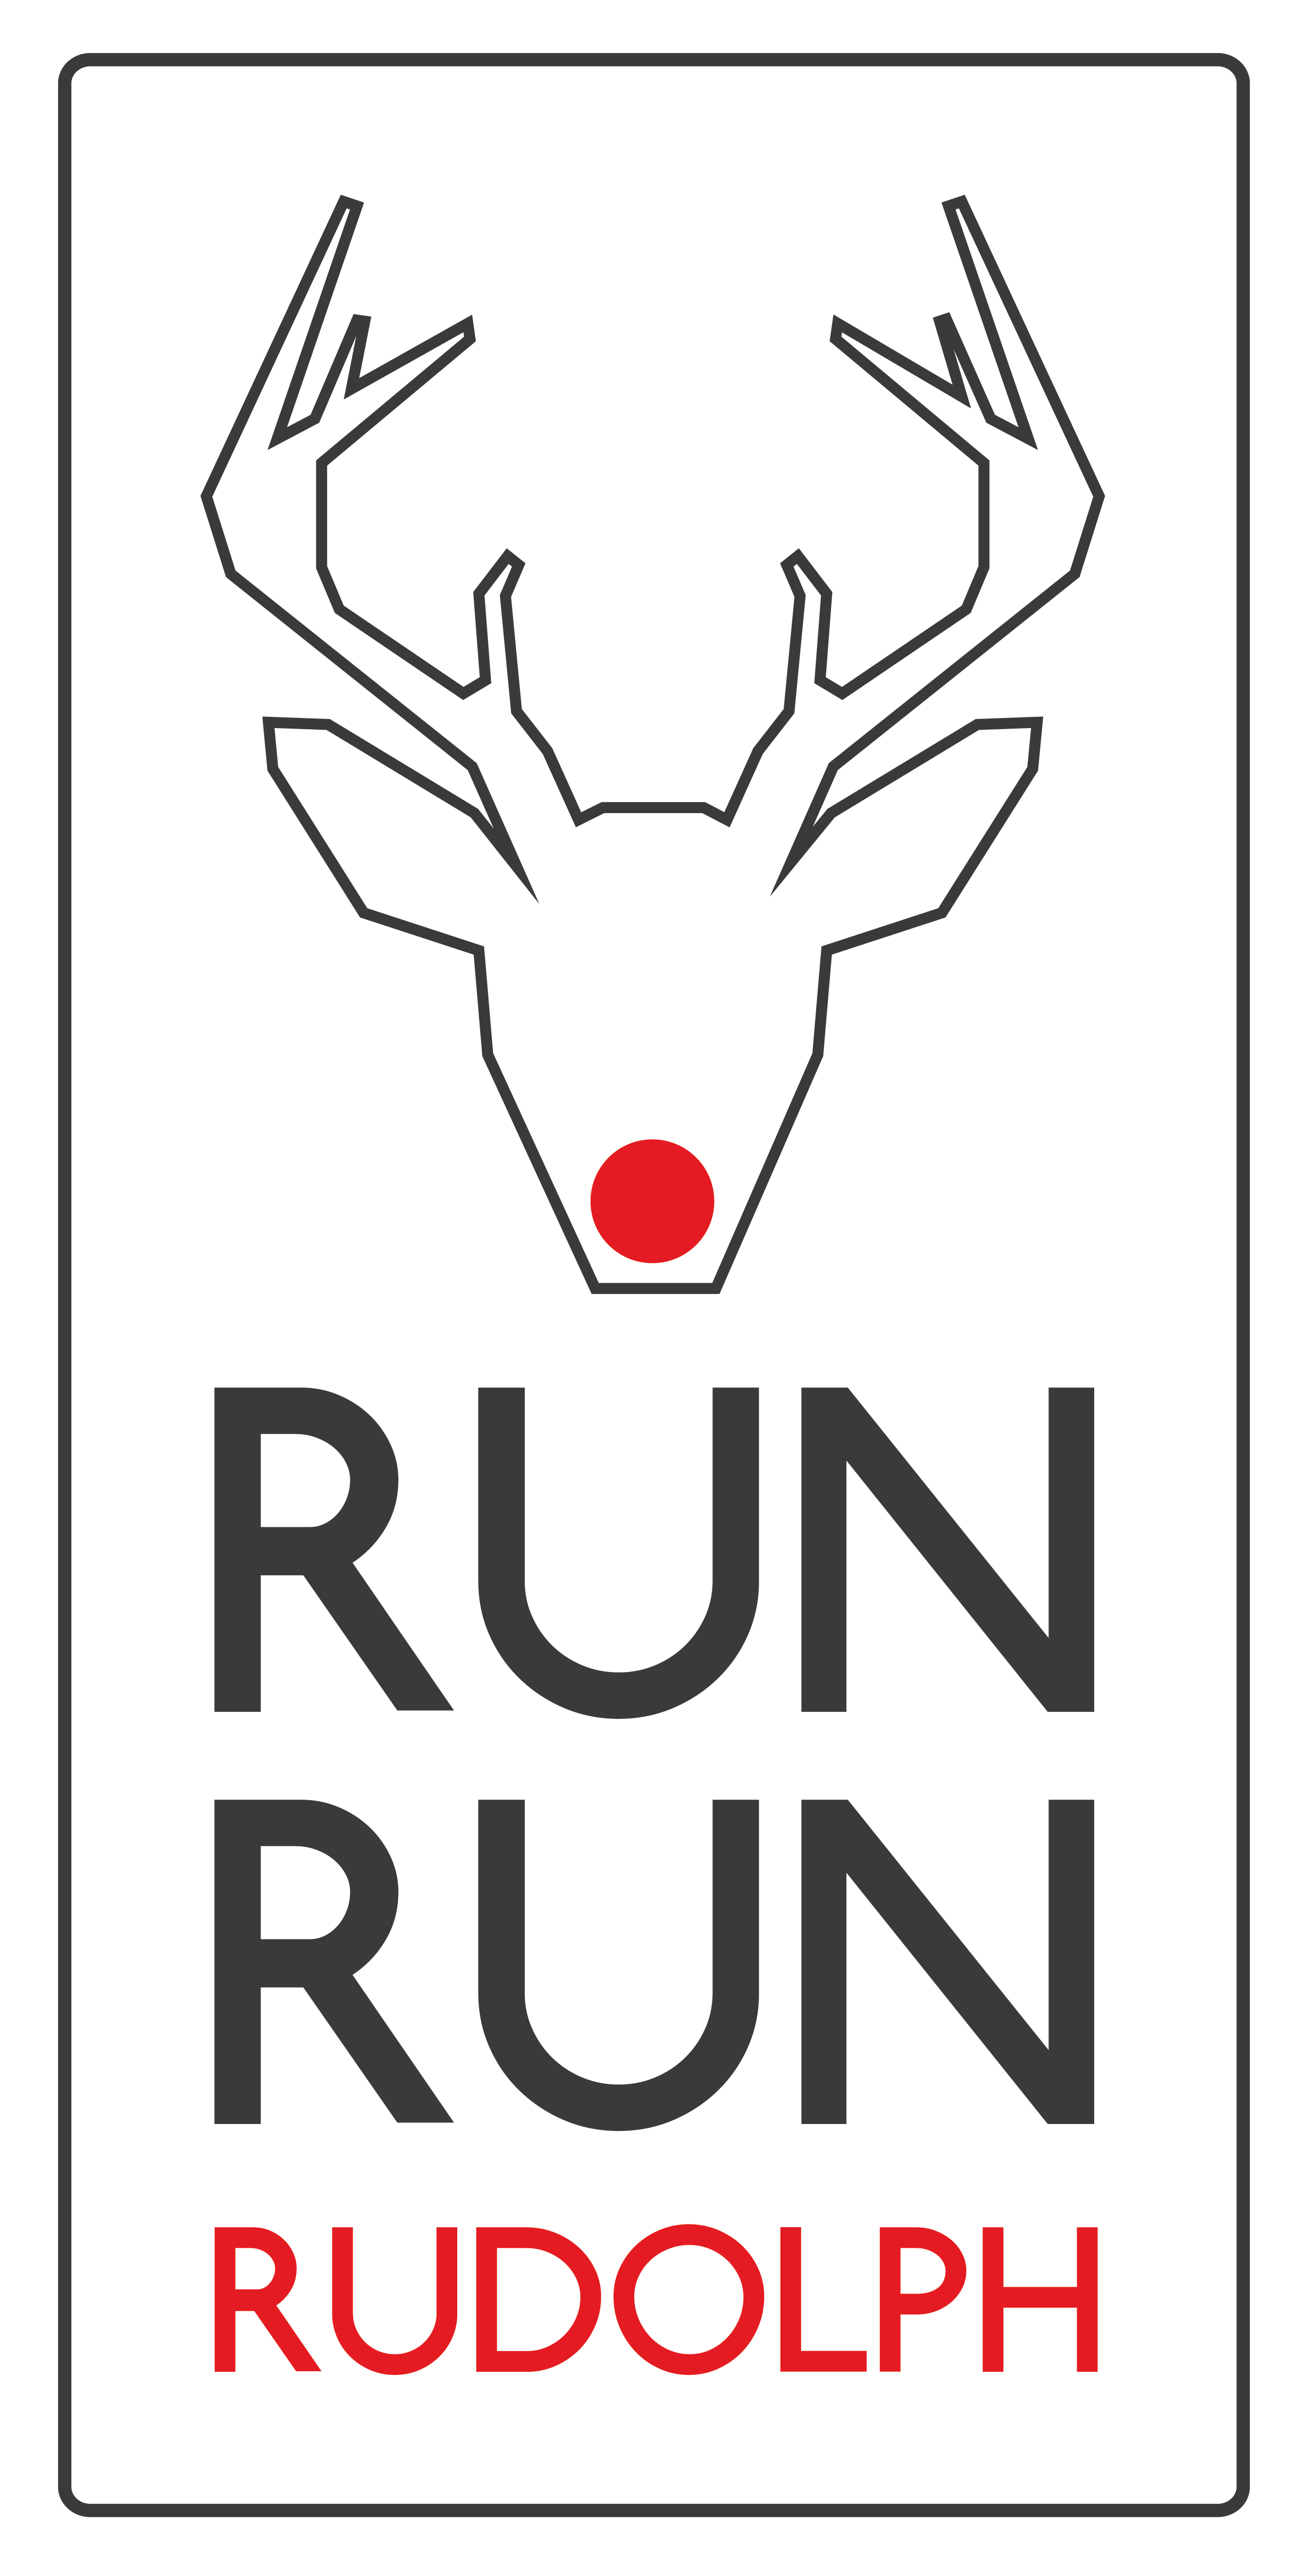 images.raceentry.com/infopages/runrunrudolph-5k-infopages-2001.png